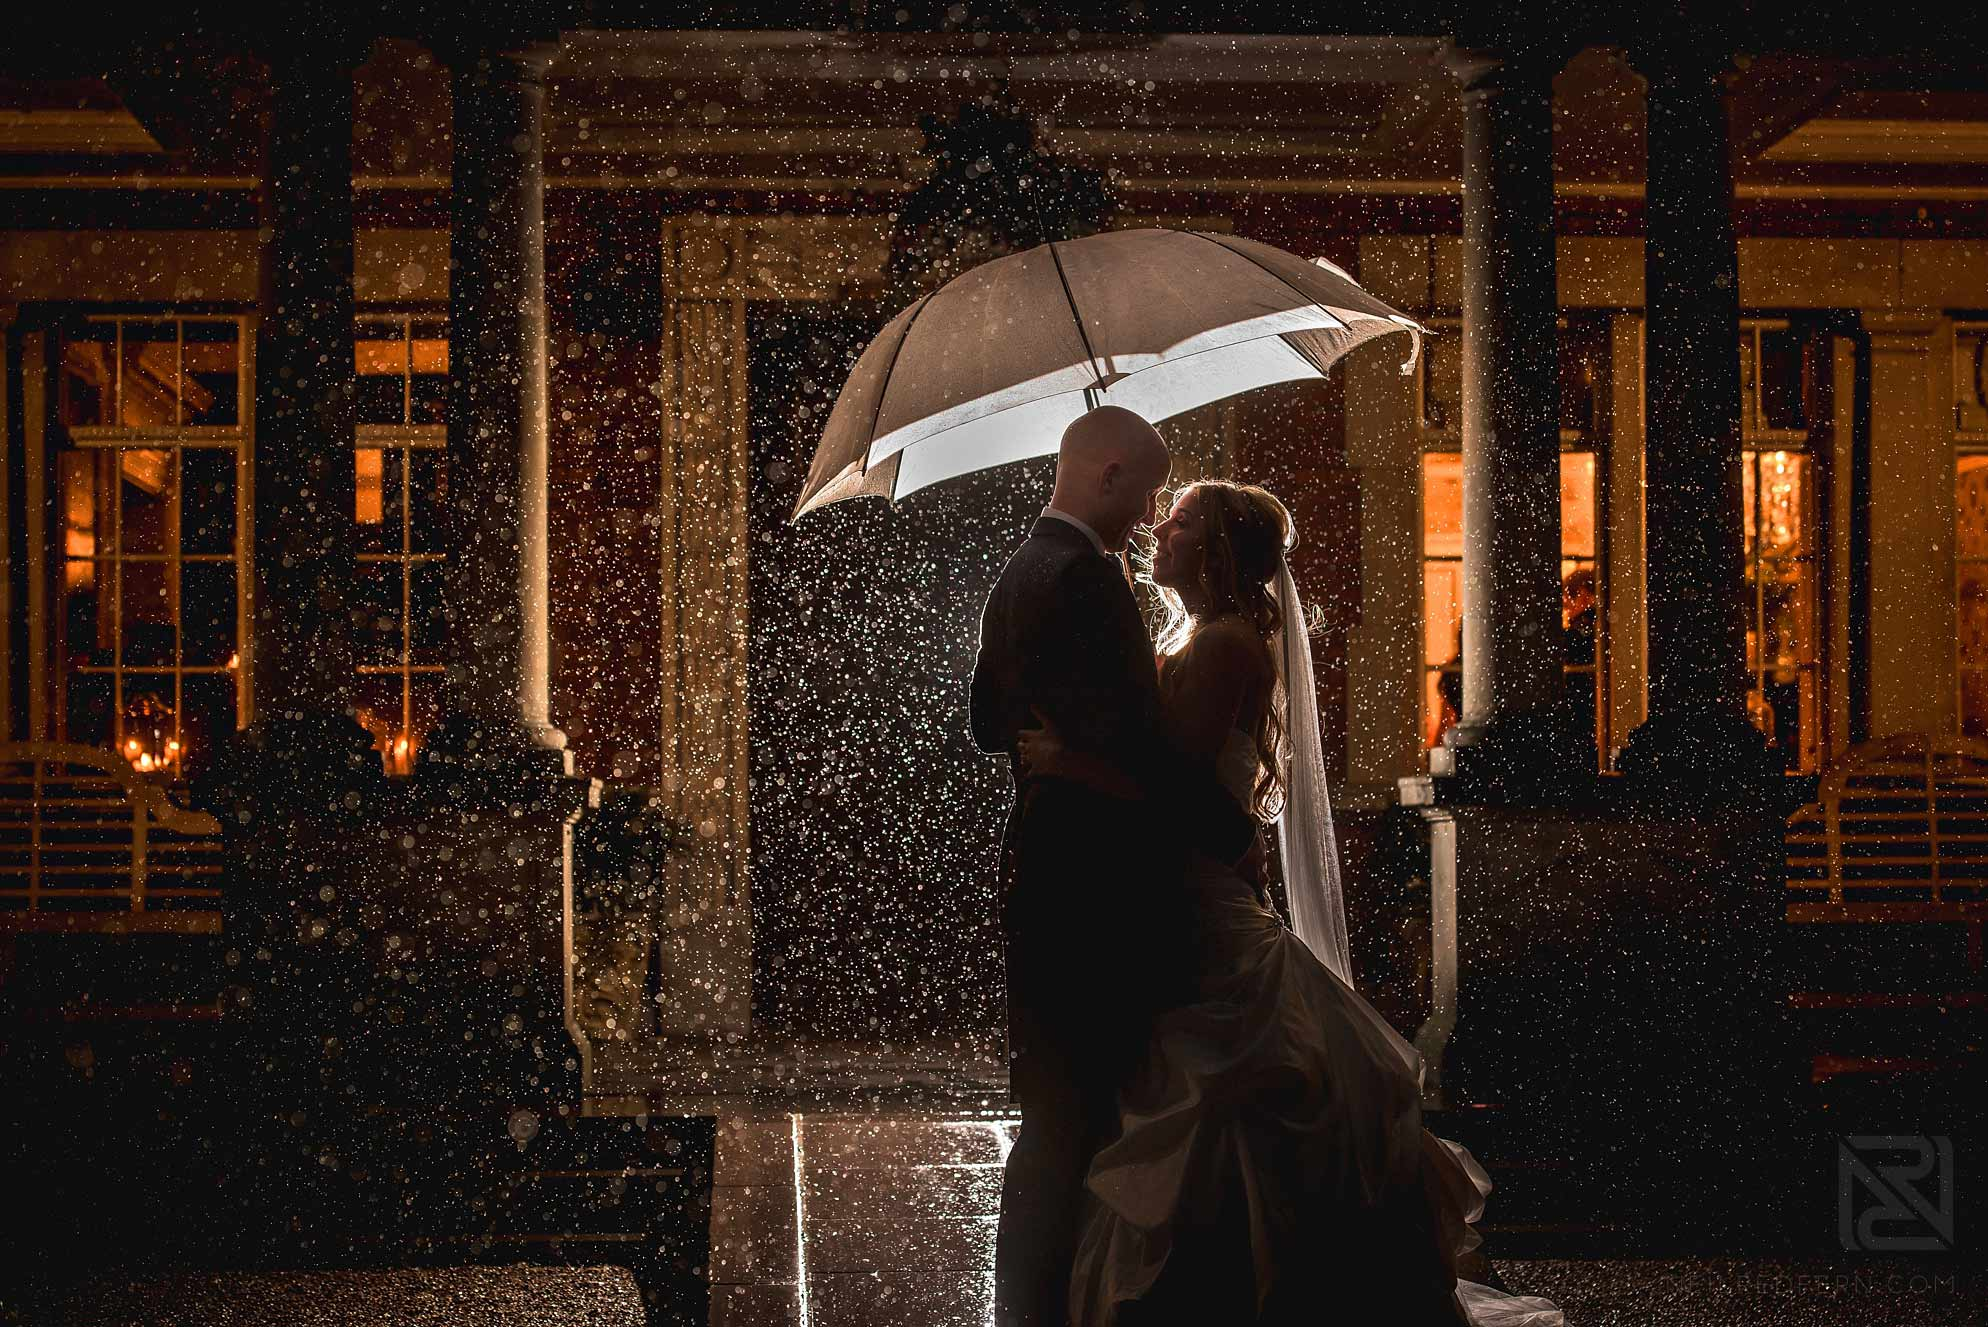 romantic photograph of bride and groom in the rain